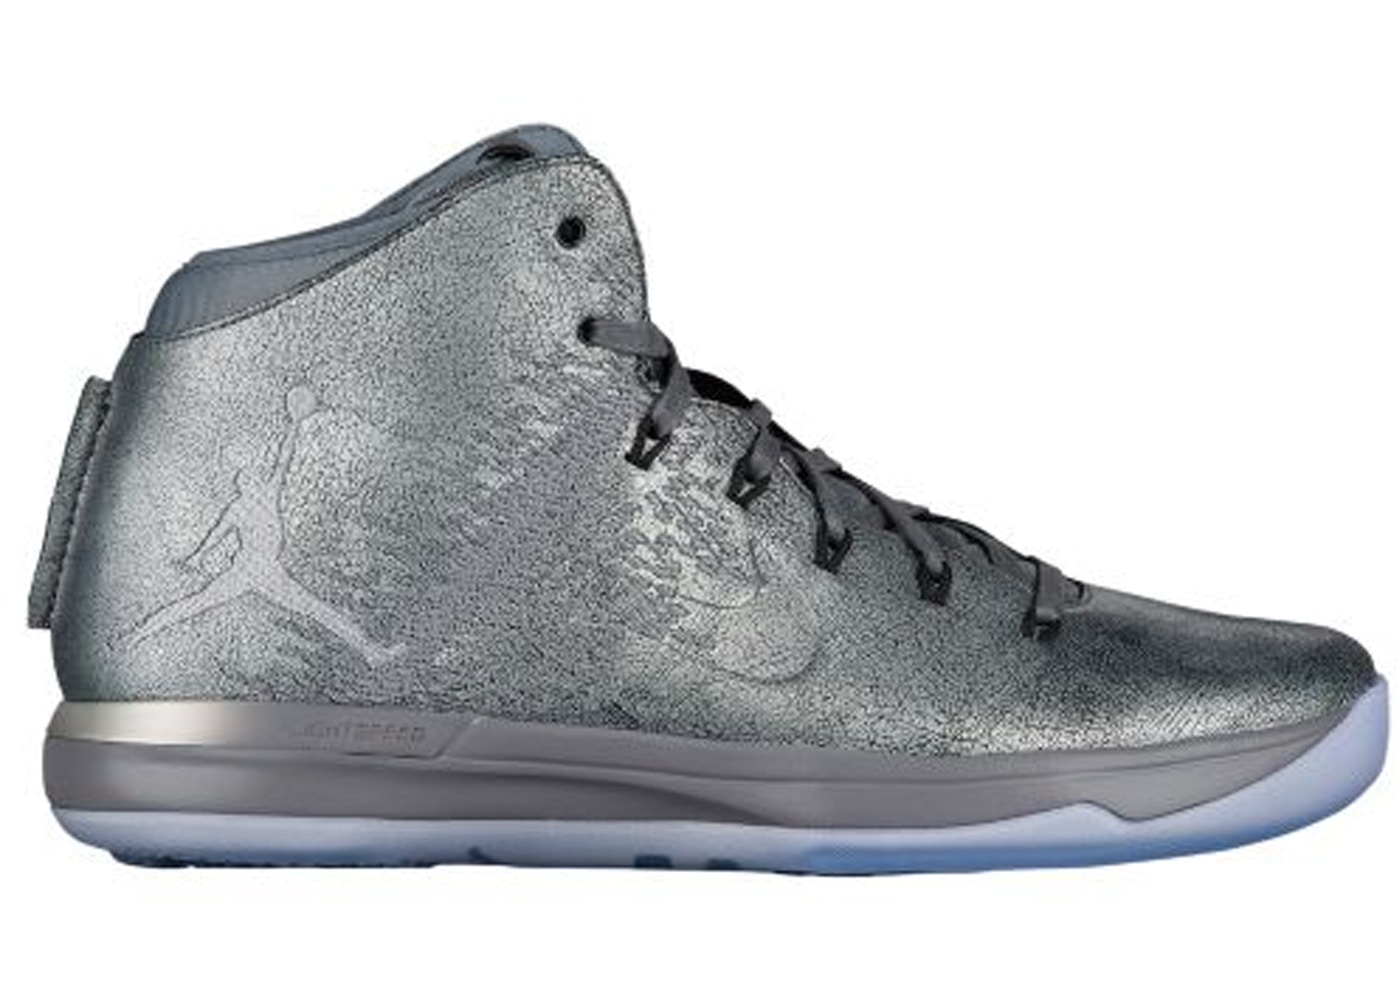 e3c43cd39a2 Jordan XXX1 Battle Grey - 914293-013